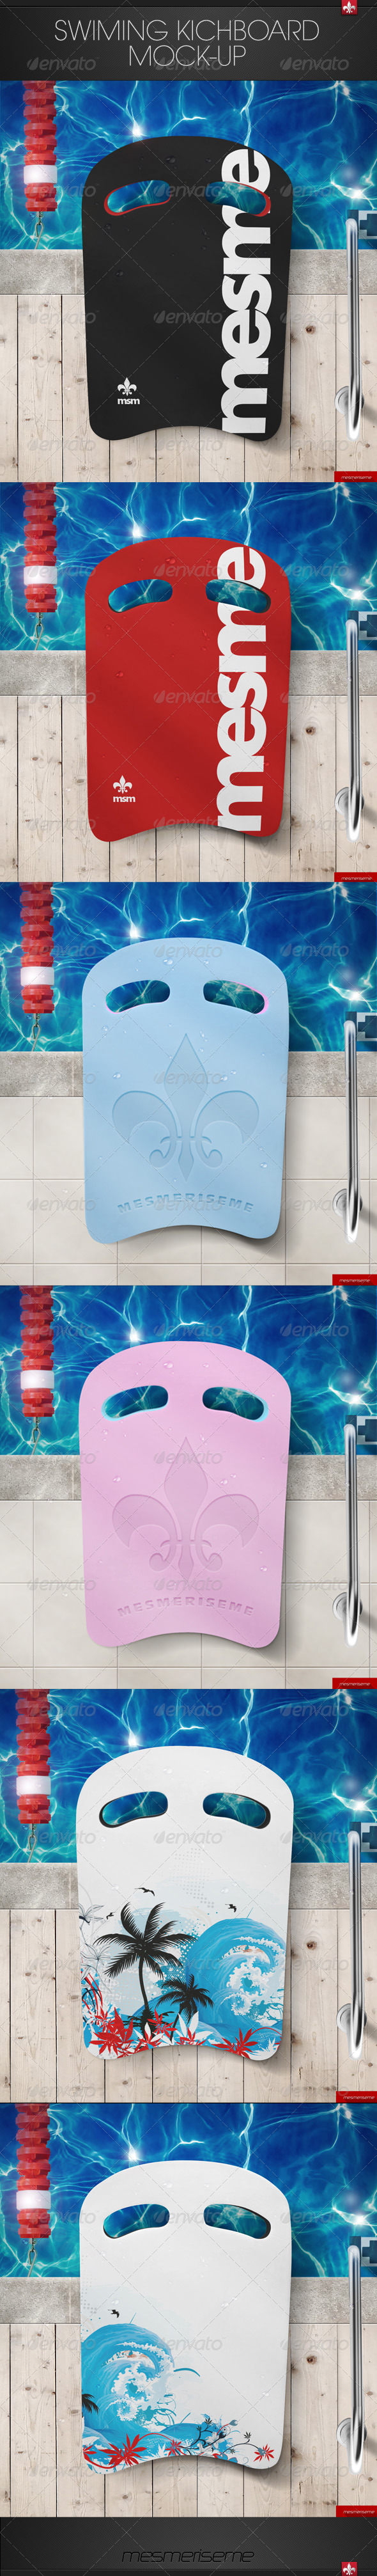 GraphicRiver Swimming Kickboard Mock-up 7510543